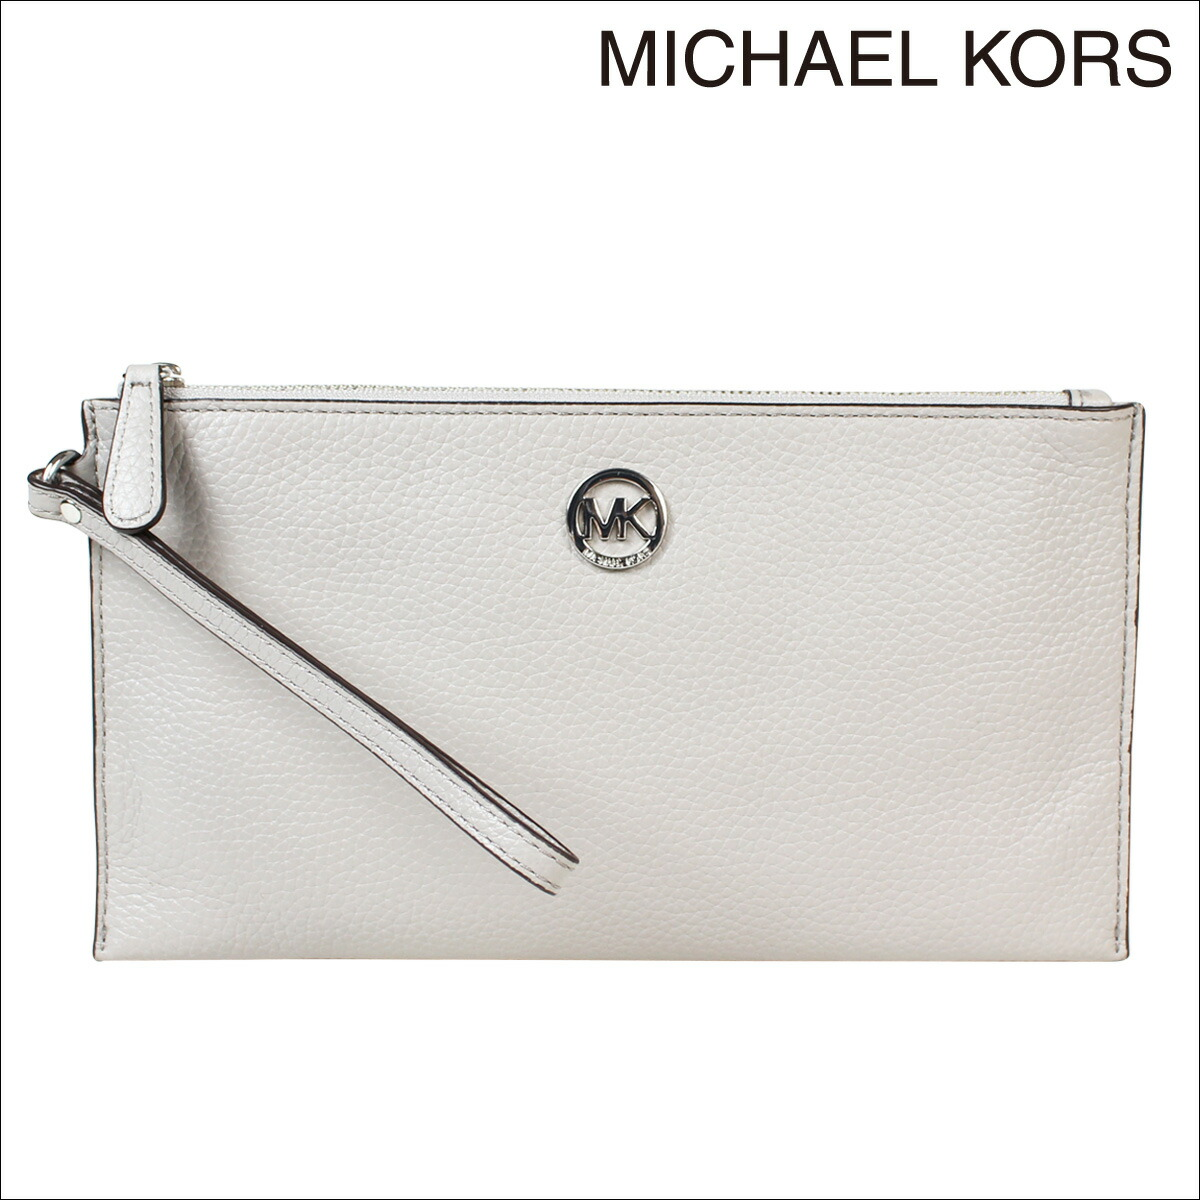 michael kors clutch grey